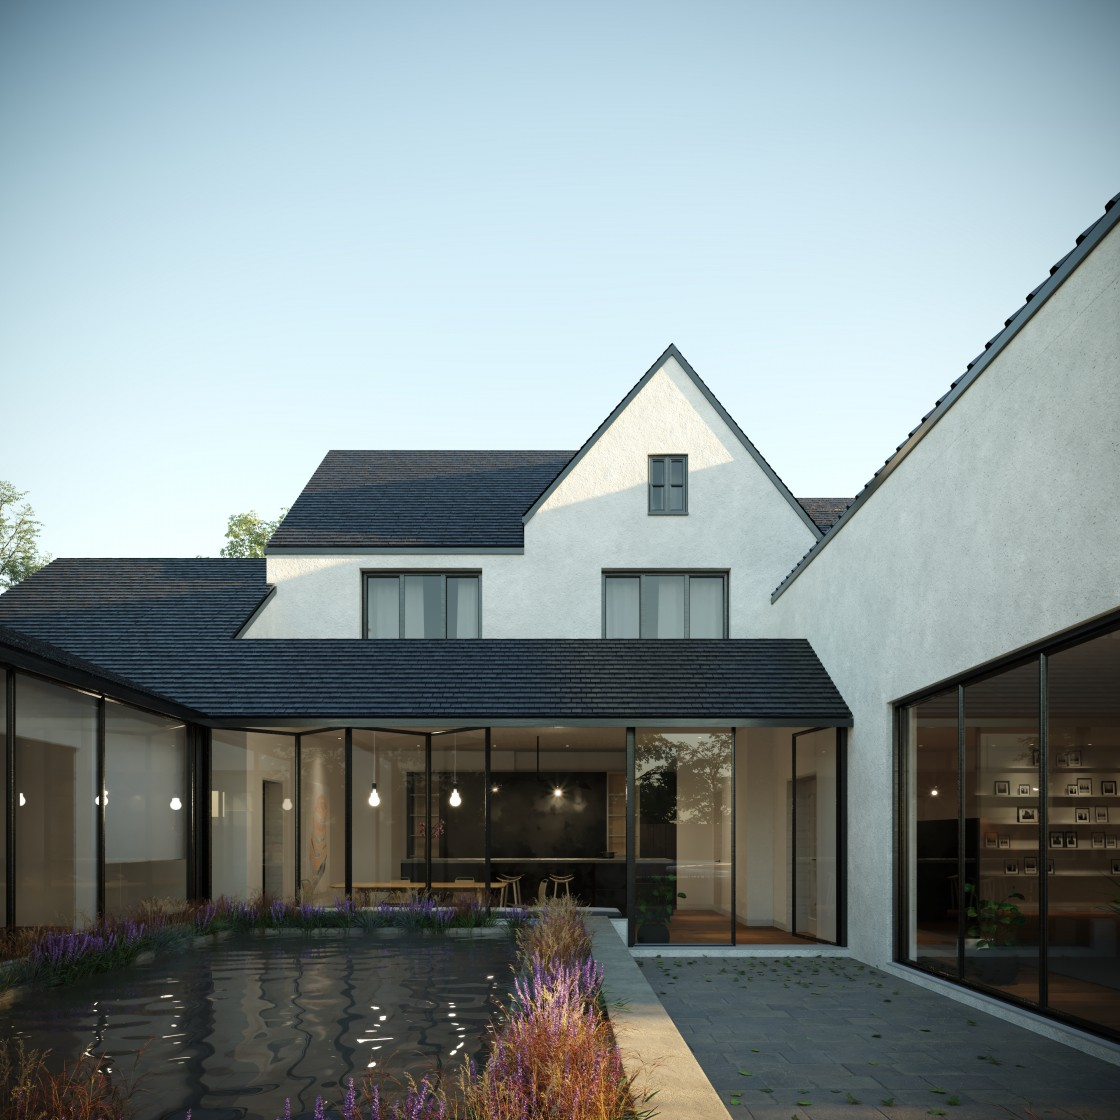 Manor Way, Bromley, London, BR3 (Bromley Council)(planning permission & building control) architect, ARB / RIBA